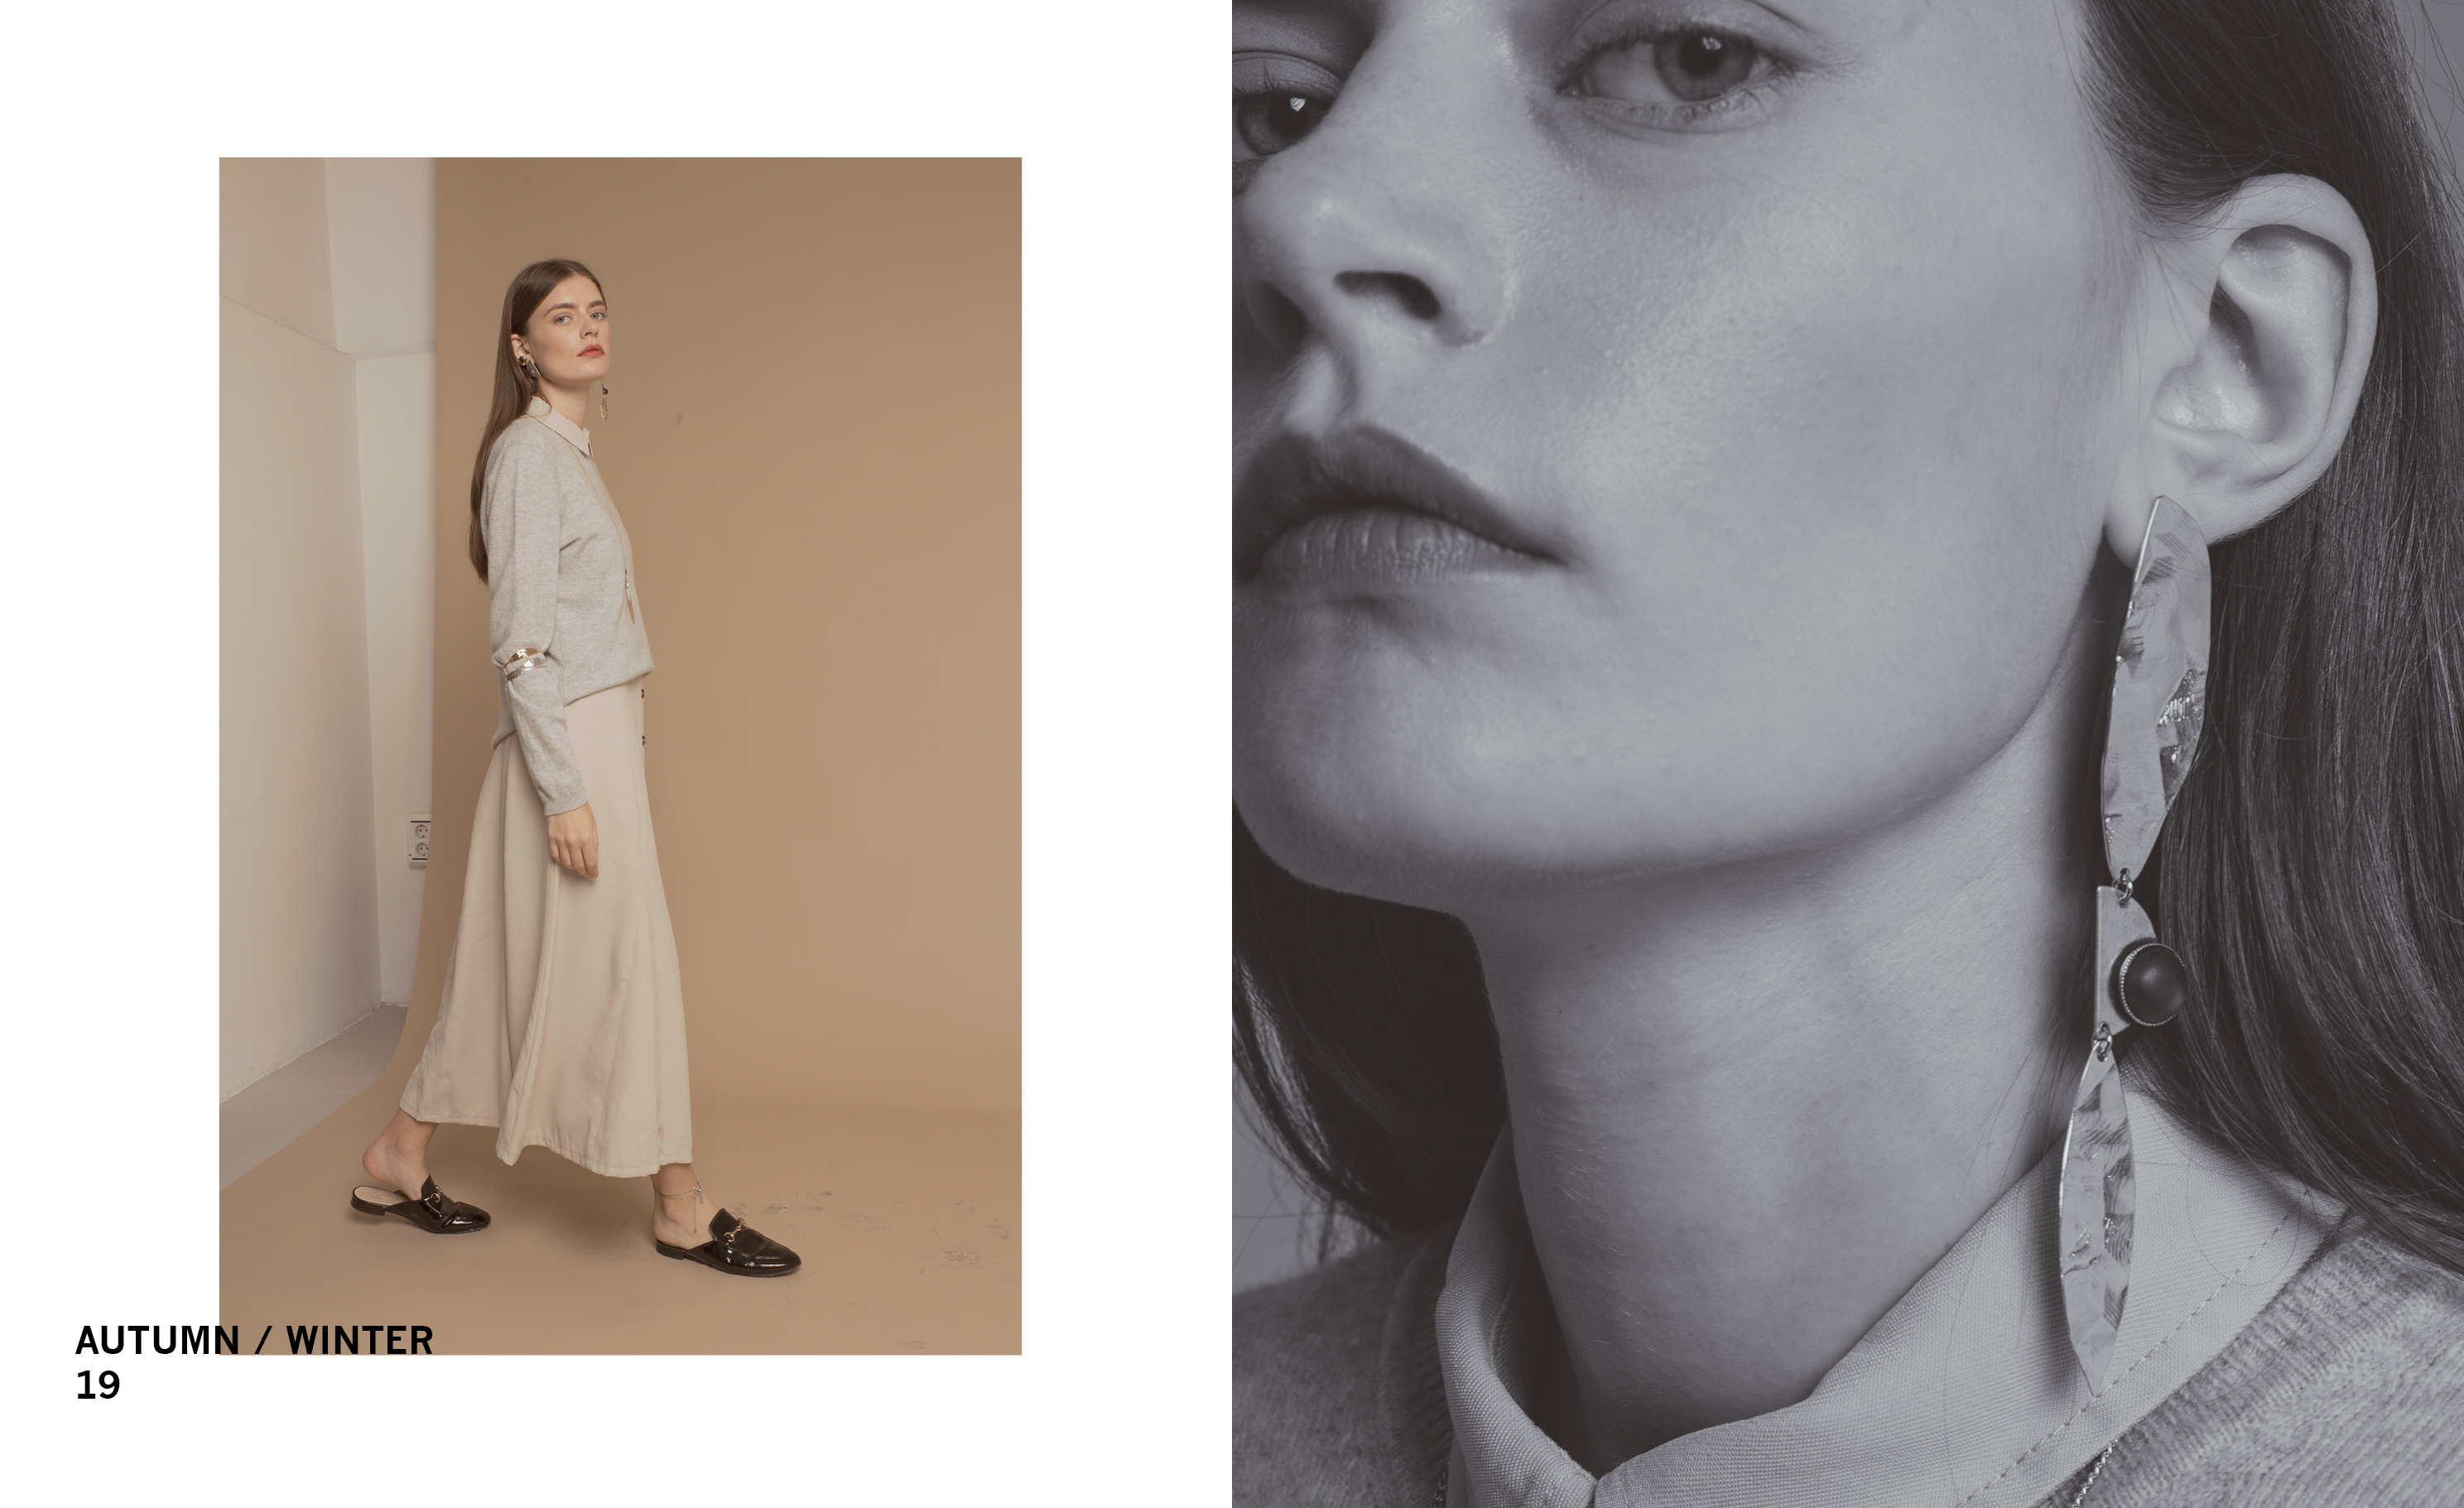 AW19 CAMPAIGN